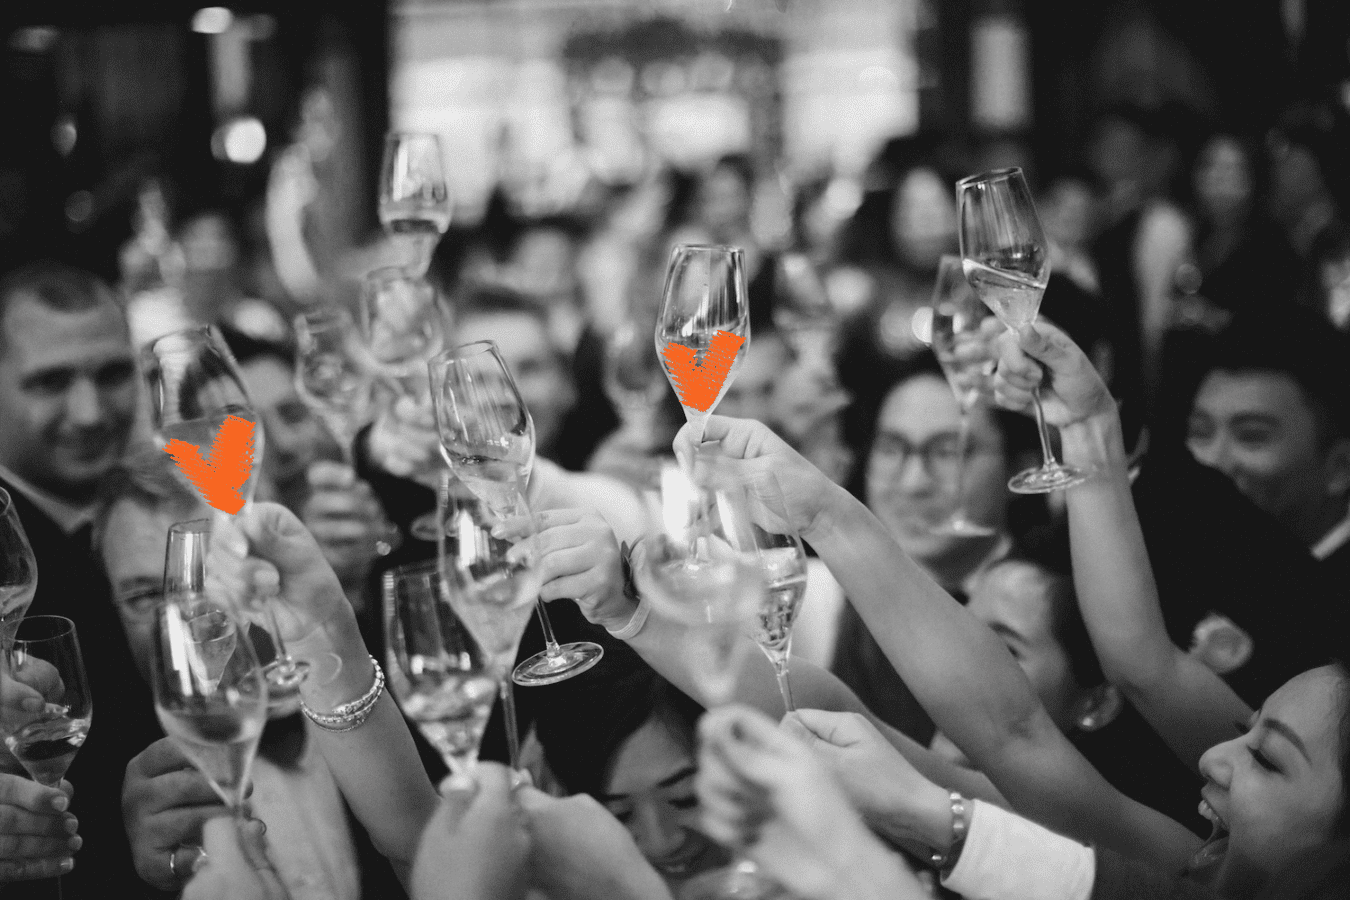 Going alcohol free at weddings –what to toast the bride and groom with?